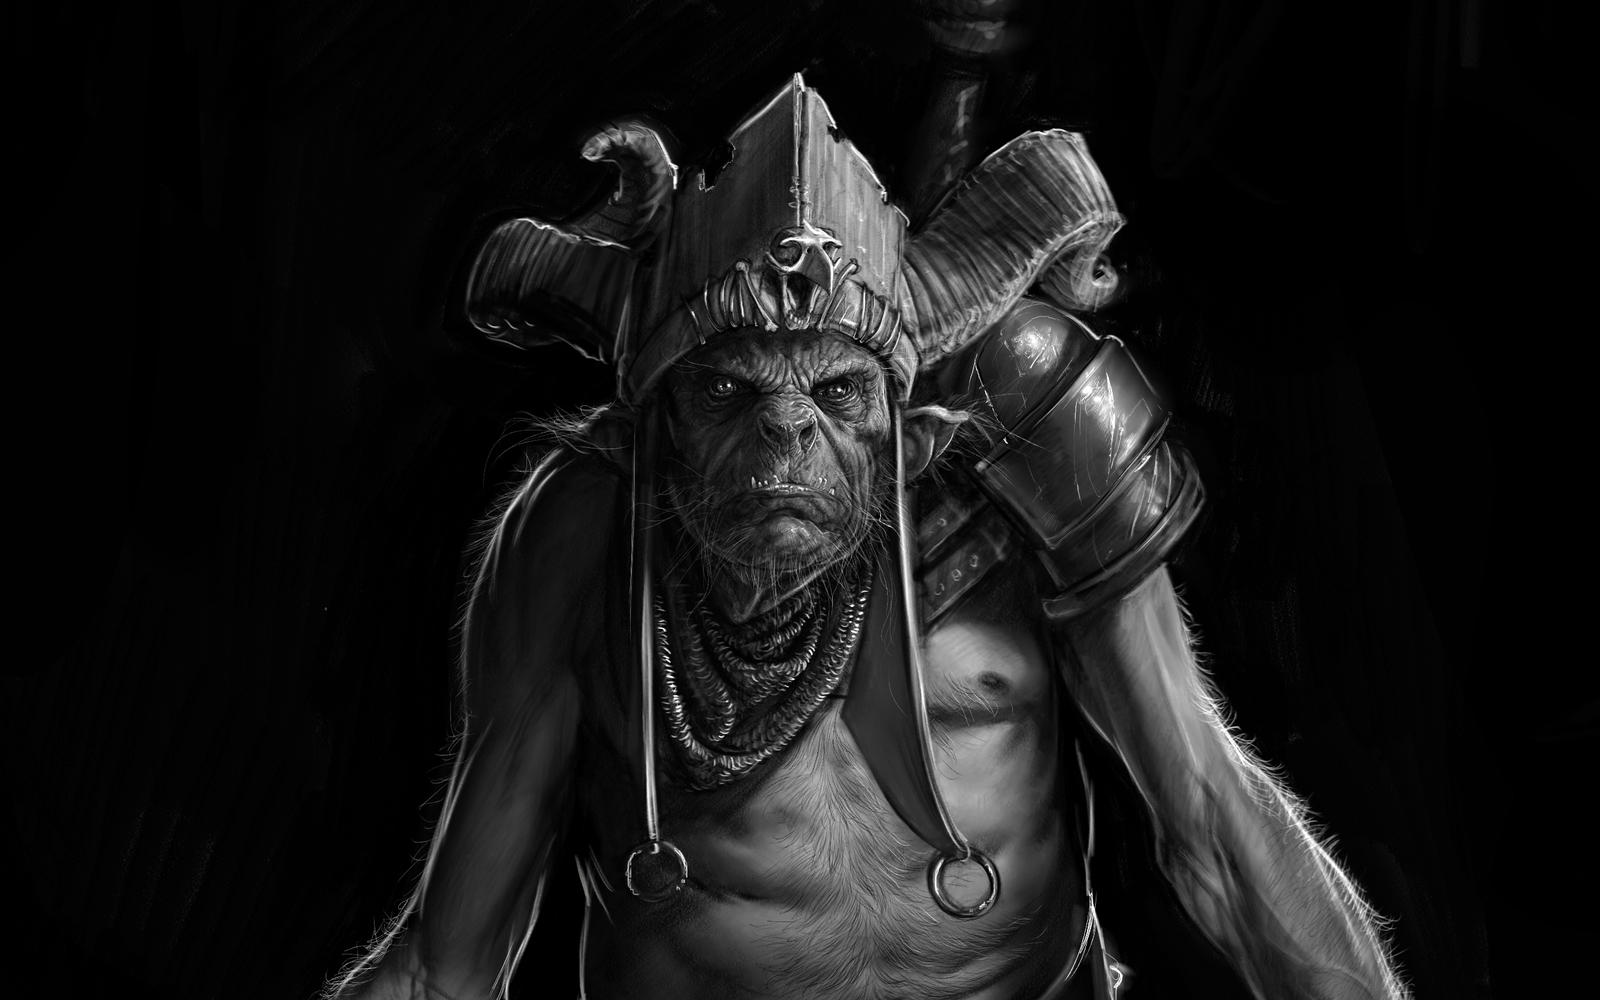 Orc Sketch detail by PaulMellender